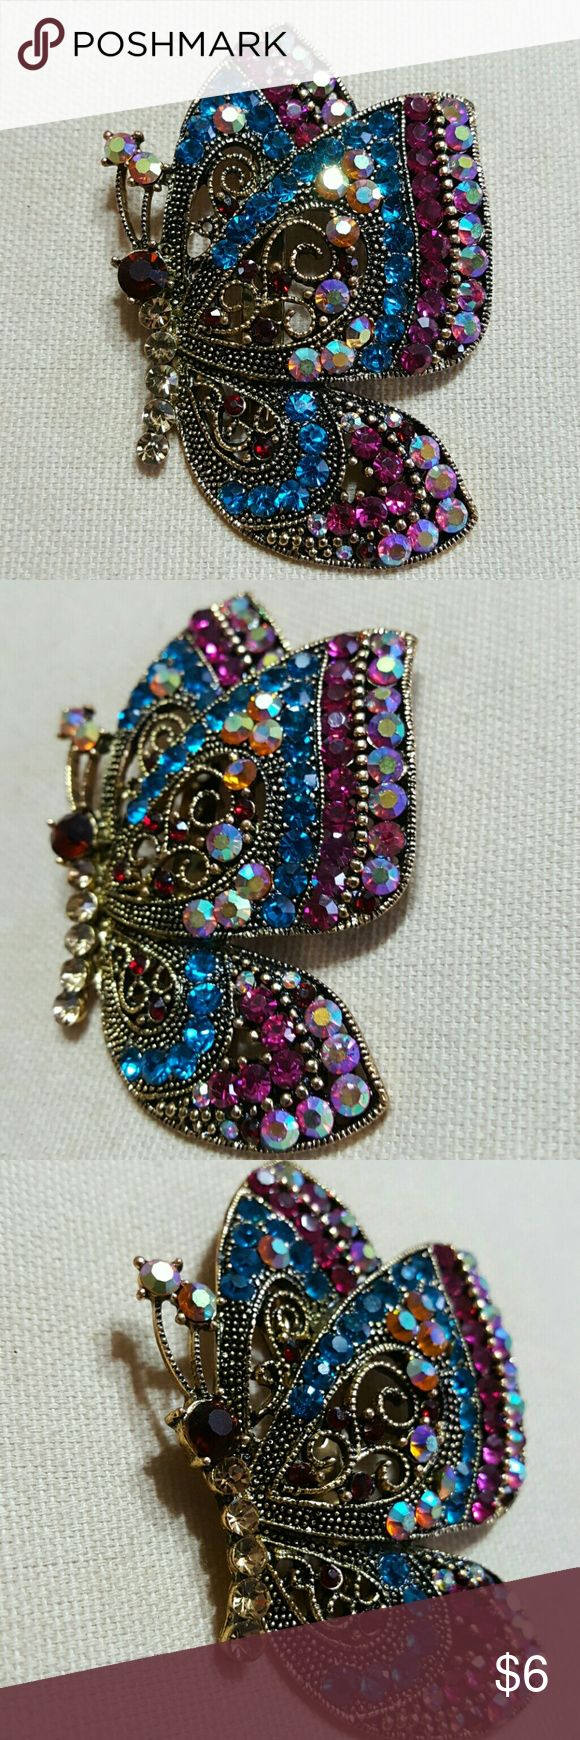 """Butterfly Pendant Brooch Butterfly Pendant Filled with beautiful rhinestones & perfect for dress up or those comfty days.  Its shy of 3"""" tall from point to point.  Feel free to ask any questions before purchasing.   Thank you for shopping my closet. Jewelry Brooches"""